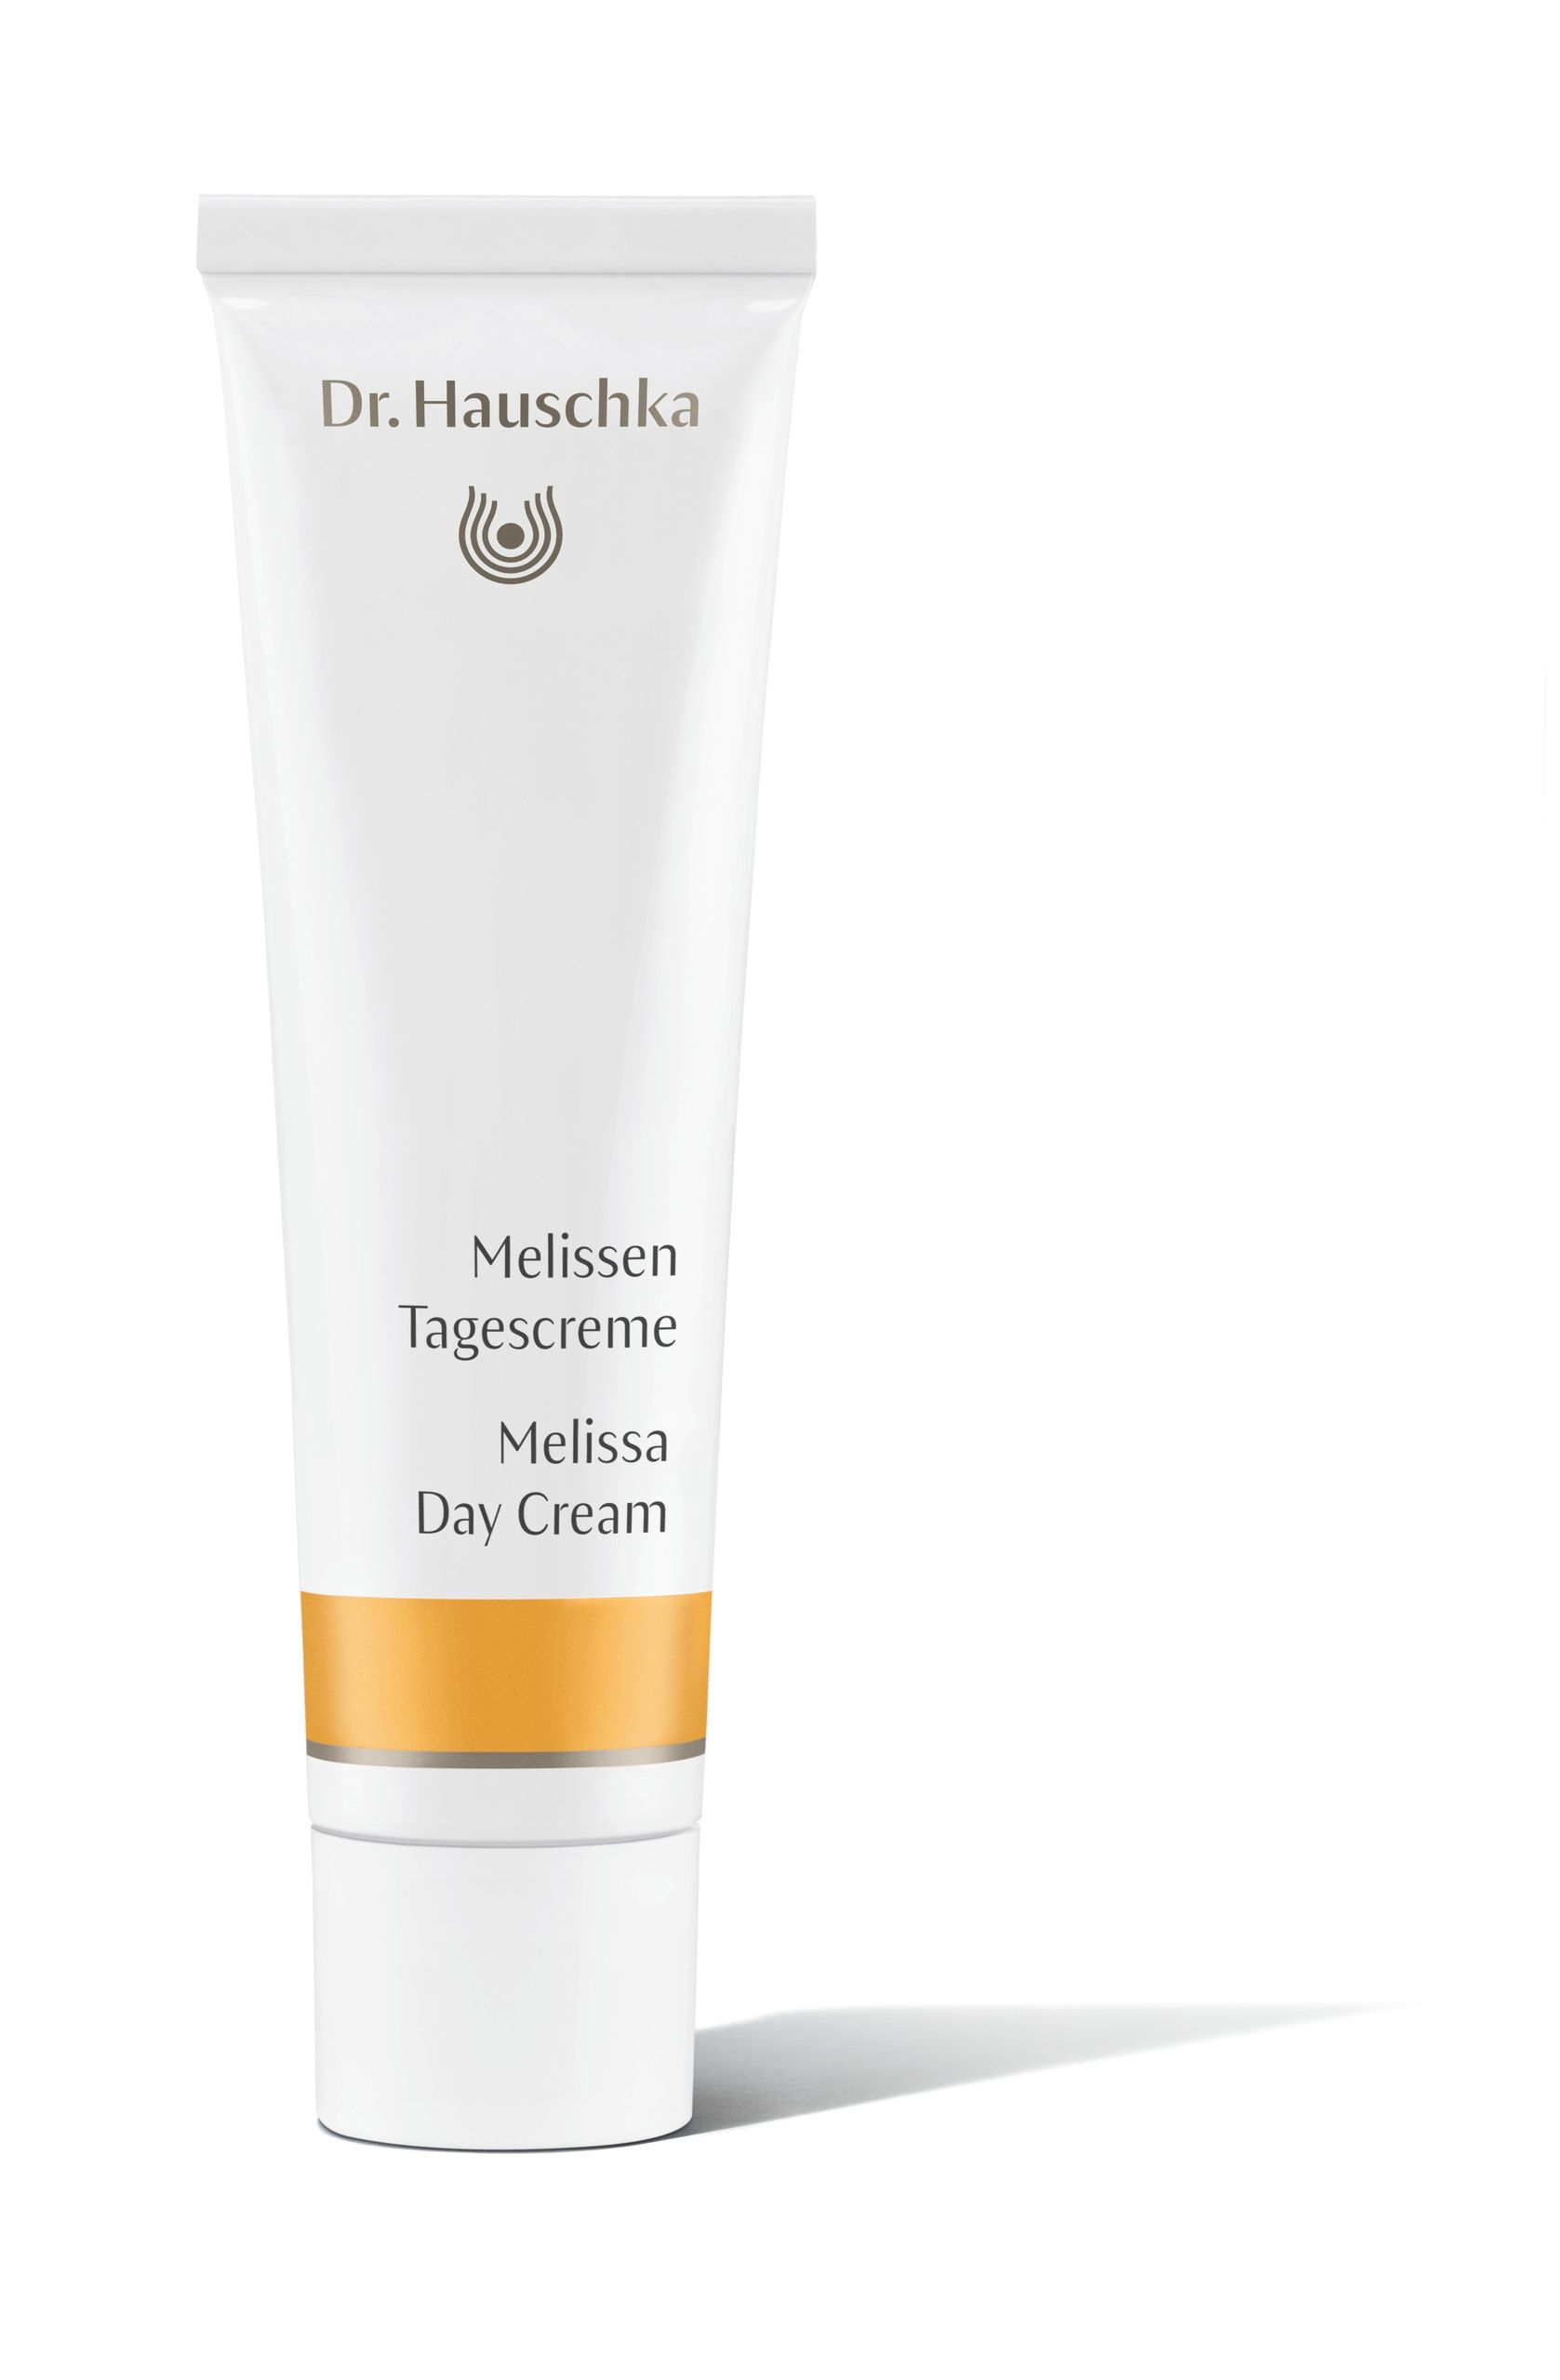 Melissa Day Cream Organic And Natural Skin Care Dr Hauschka Skin Care Moisturizer For Dry Skin Hydrating Mask Organic Wrinkle Cream